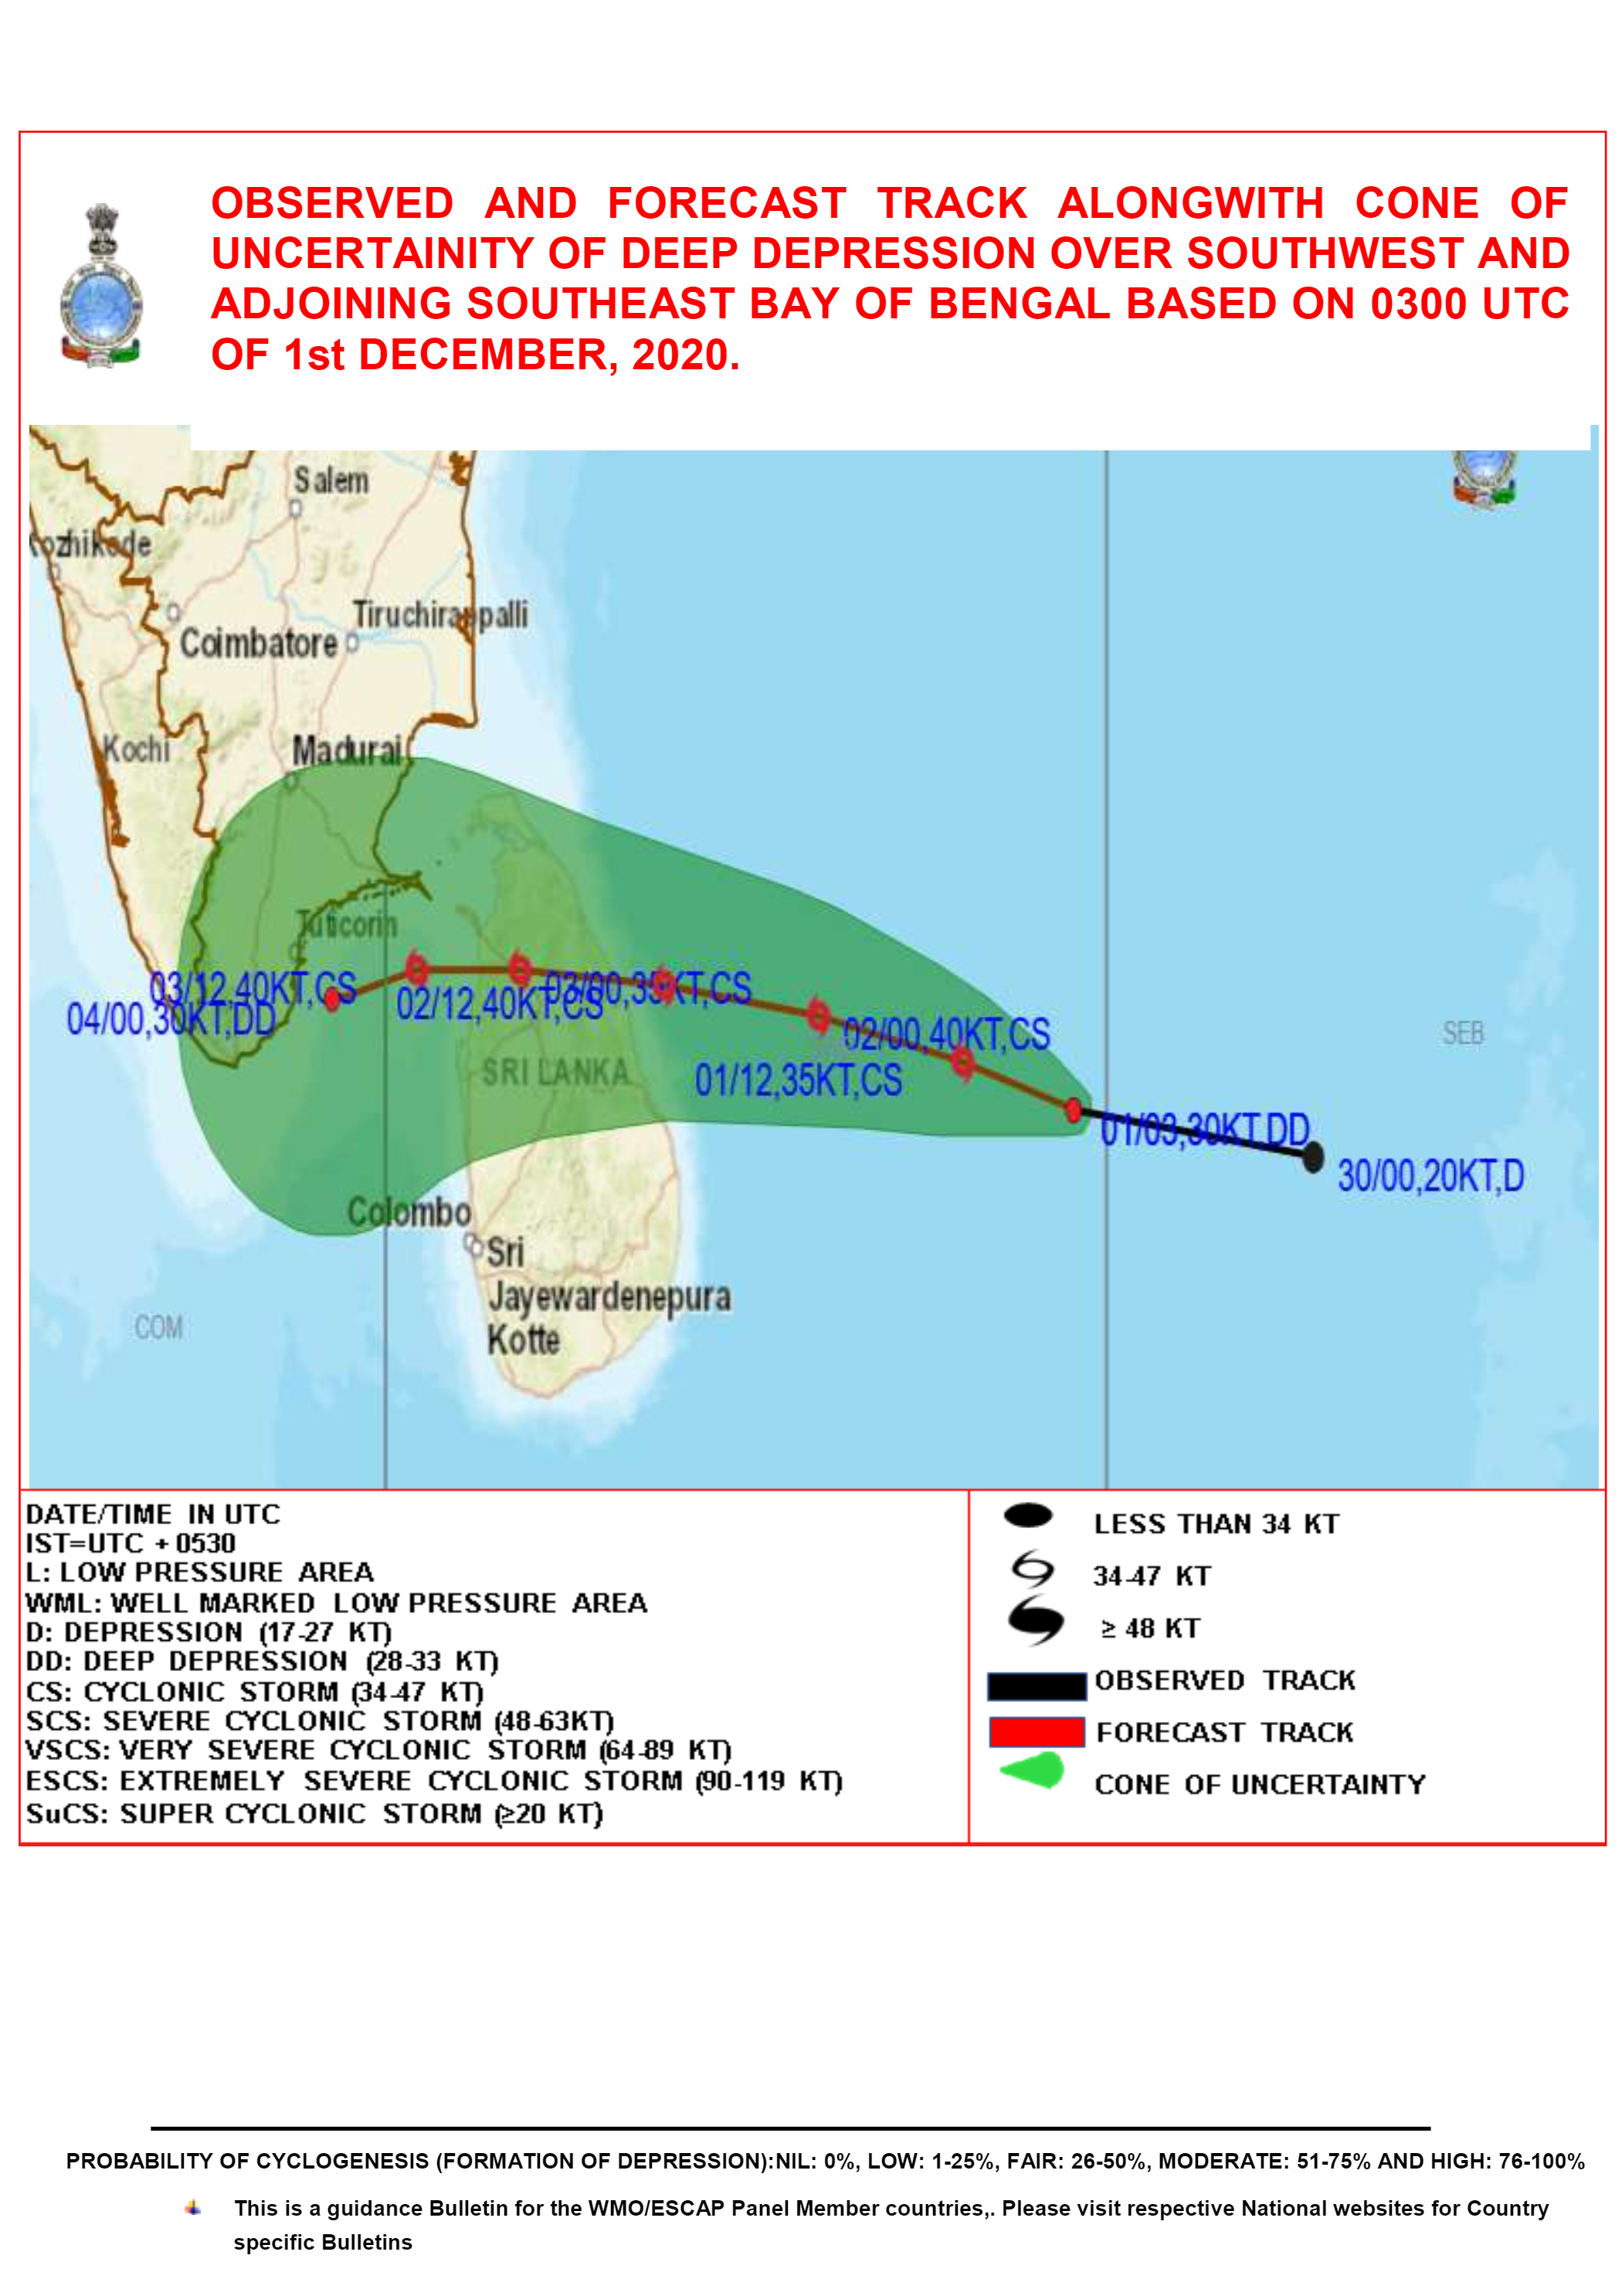 4_7. Tropical Weather Outlook based on  0300 UTC of 01.12.2020_5fc5db8e53286.png